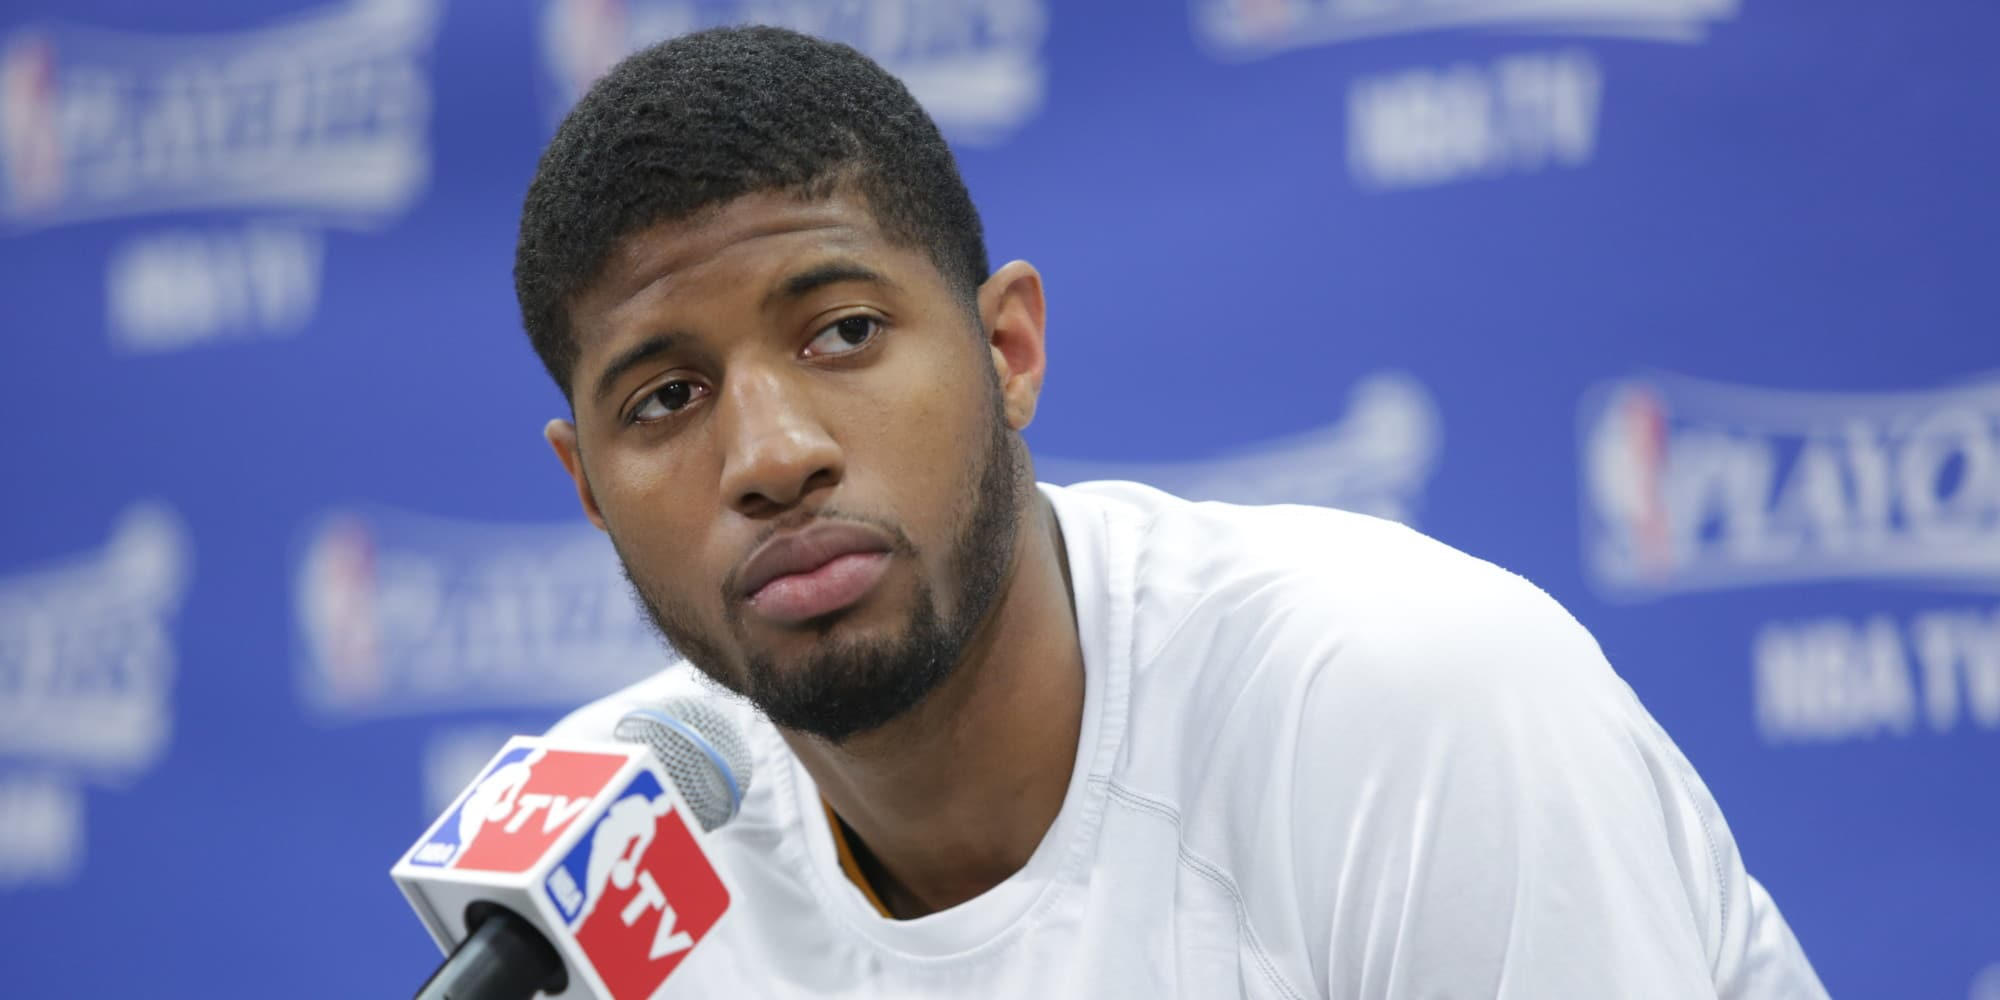 Paul George: Paul George Net Worth 2017-2016, Biography, Wiki